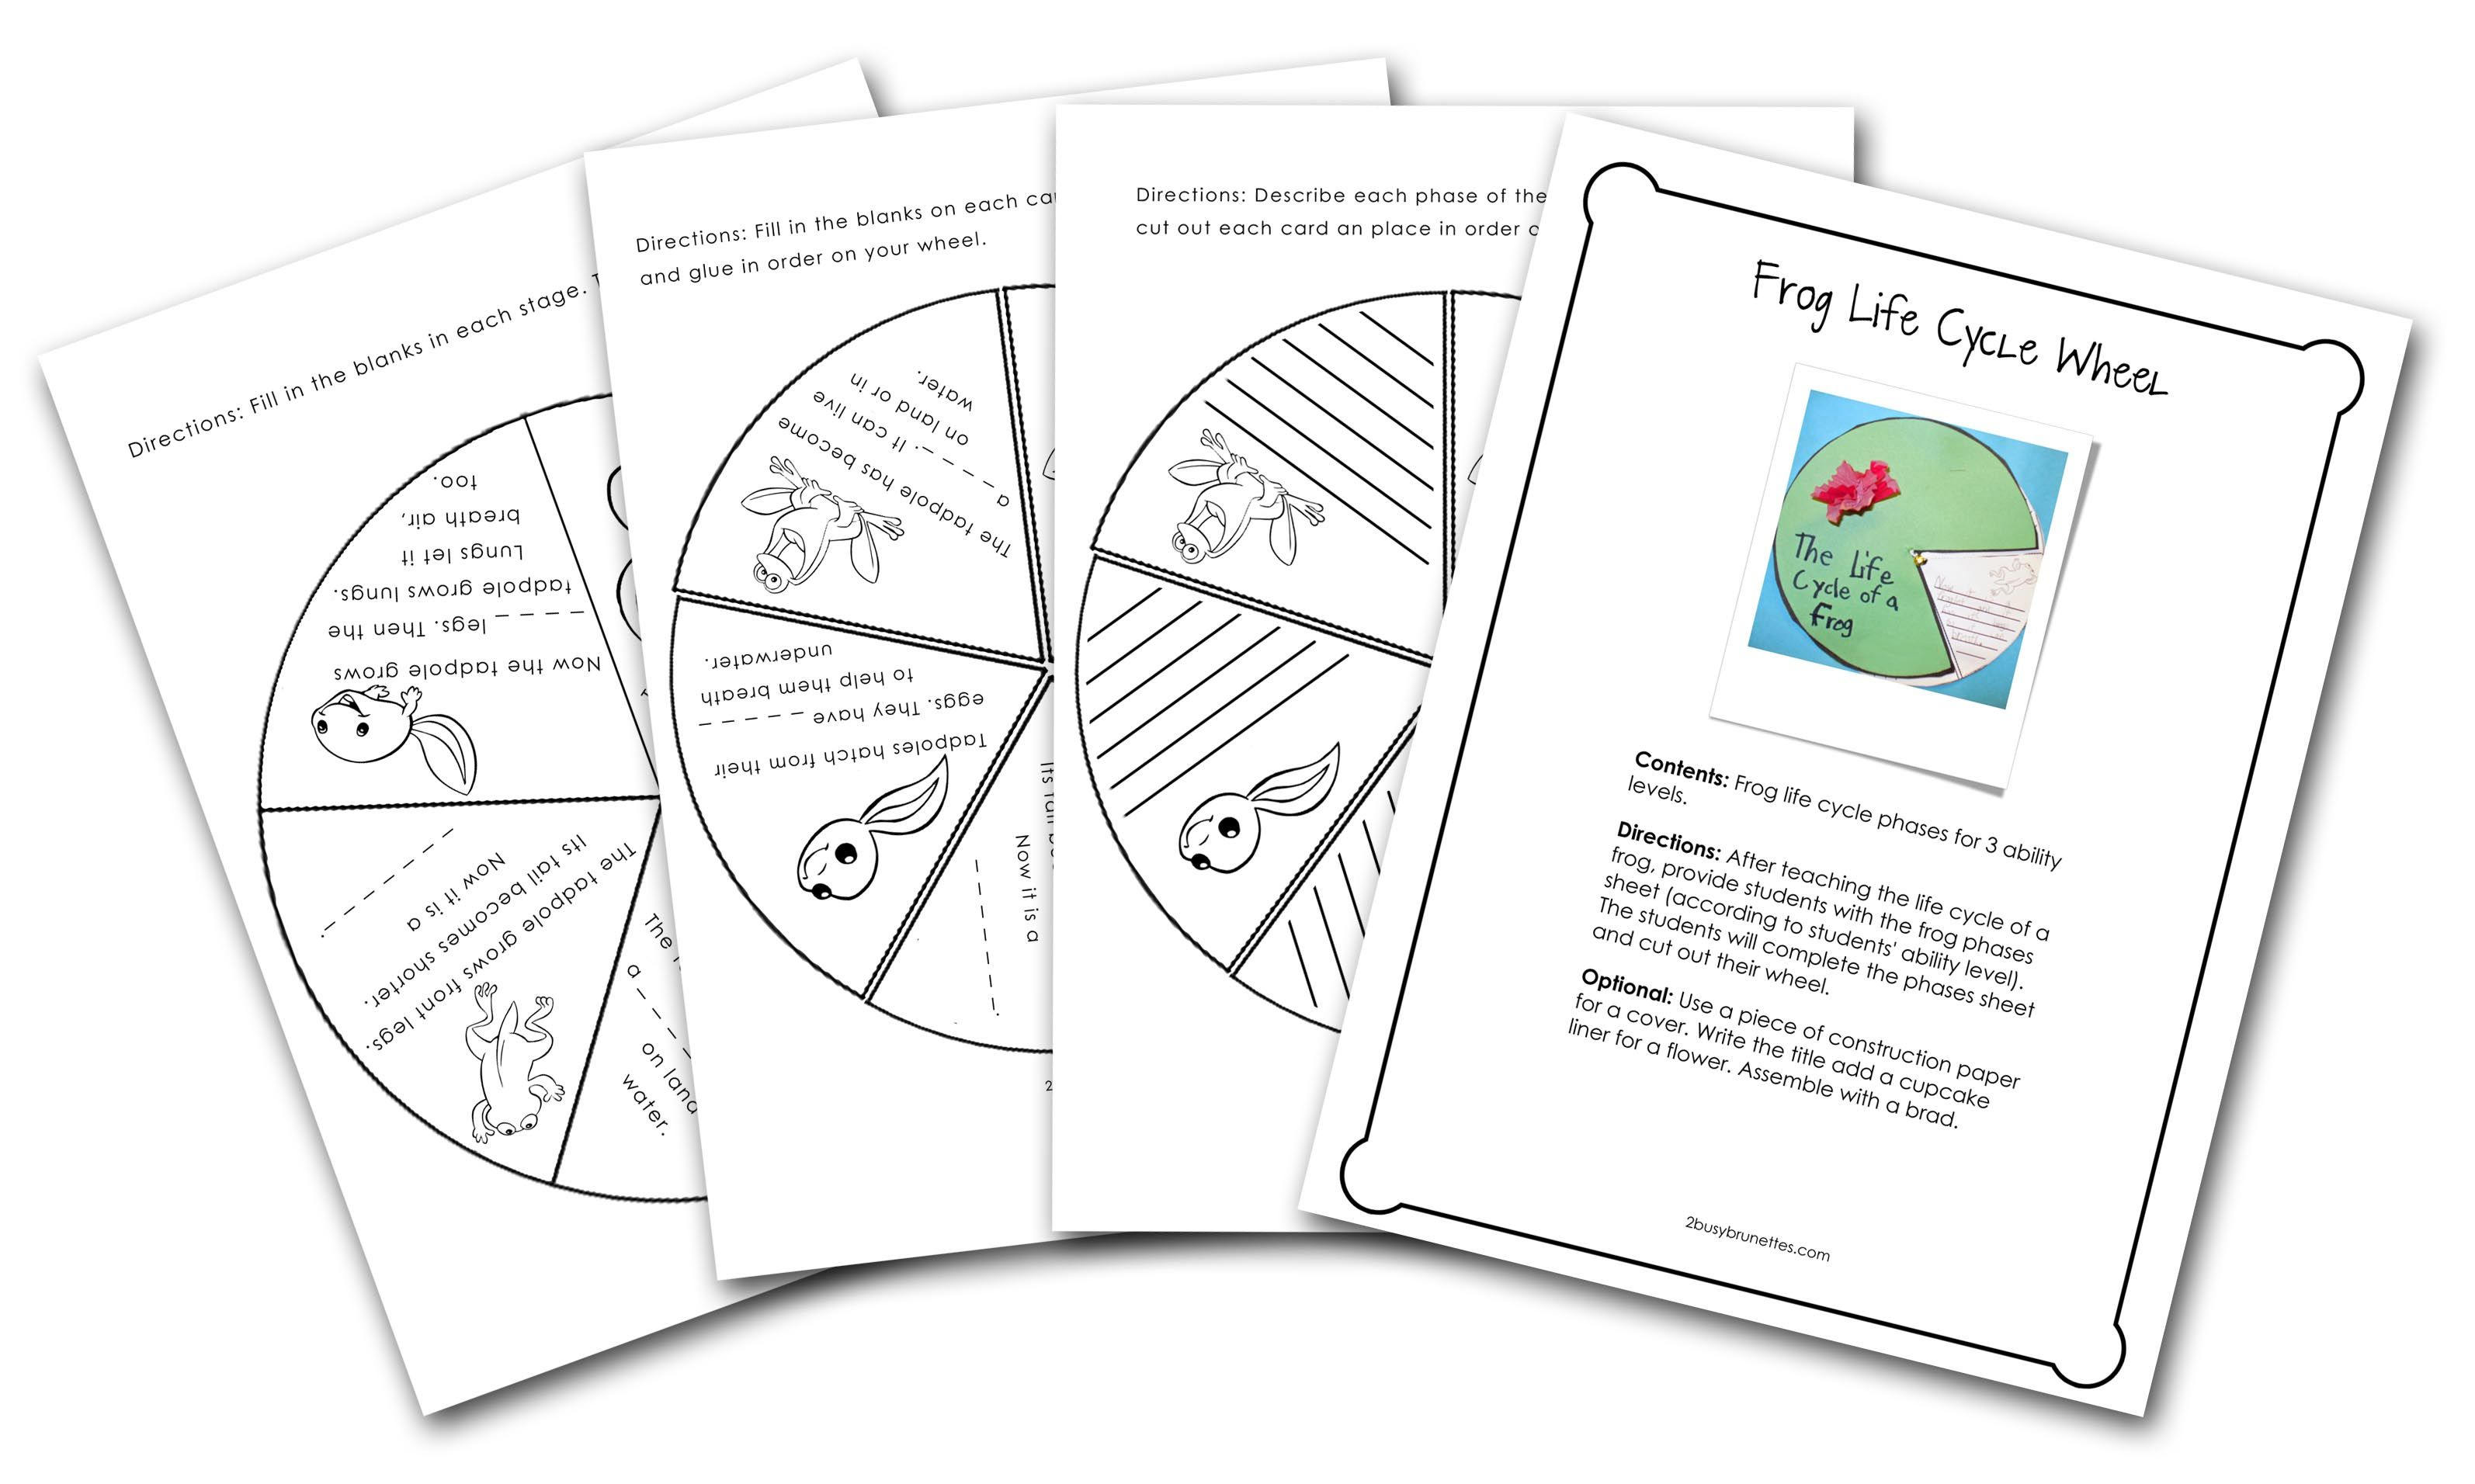 Frog Life Cycle Wheel: Students will use the wheel to show